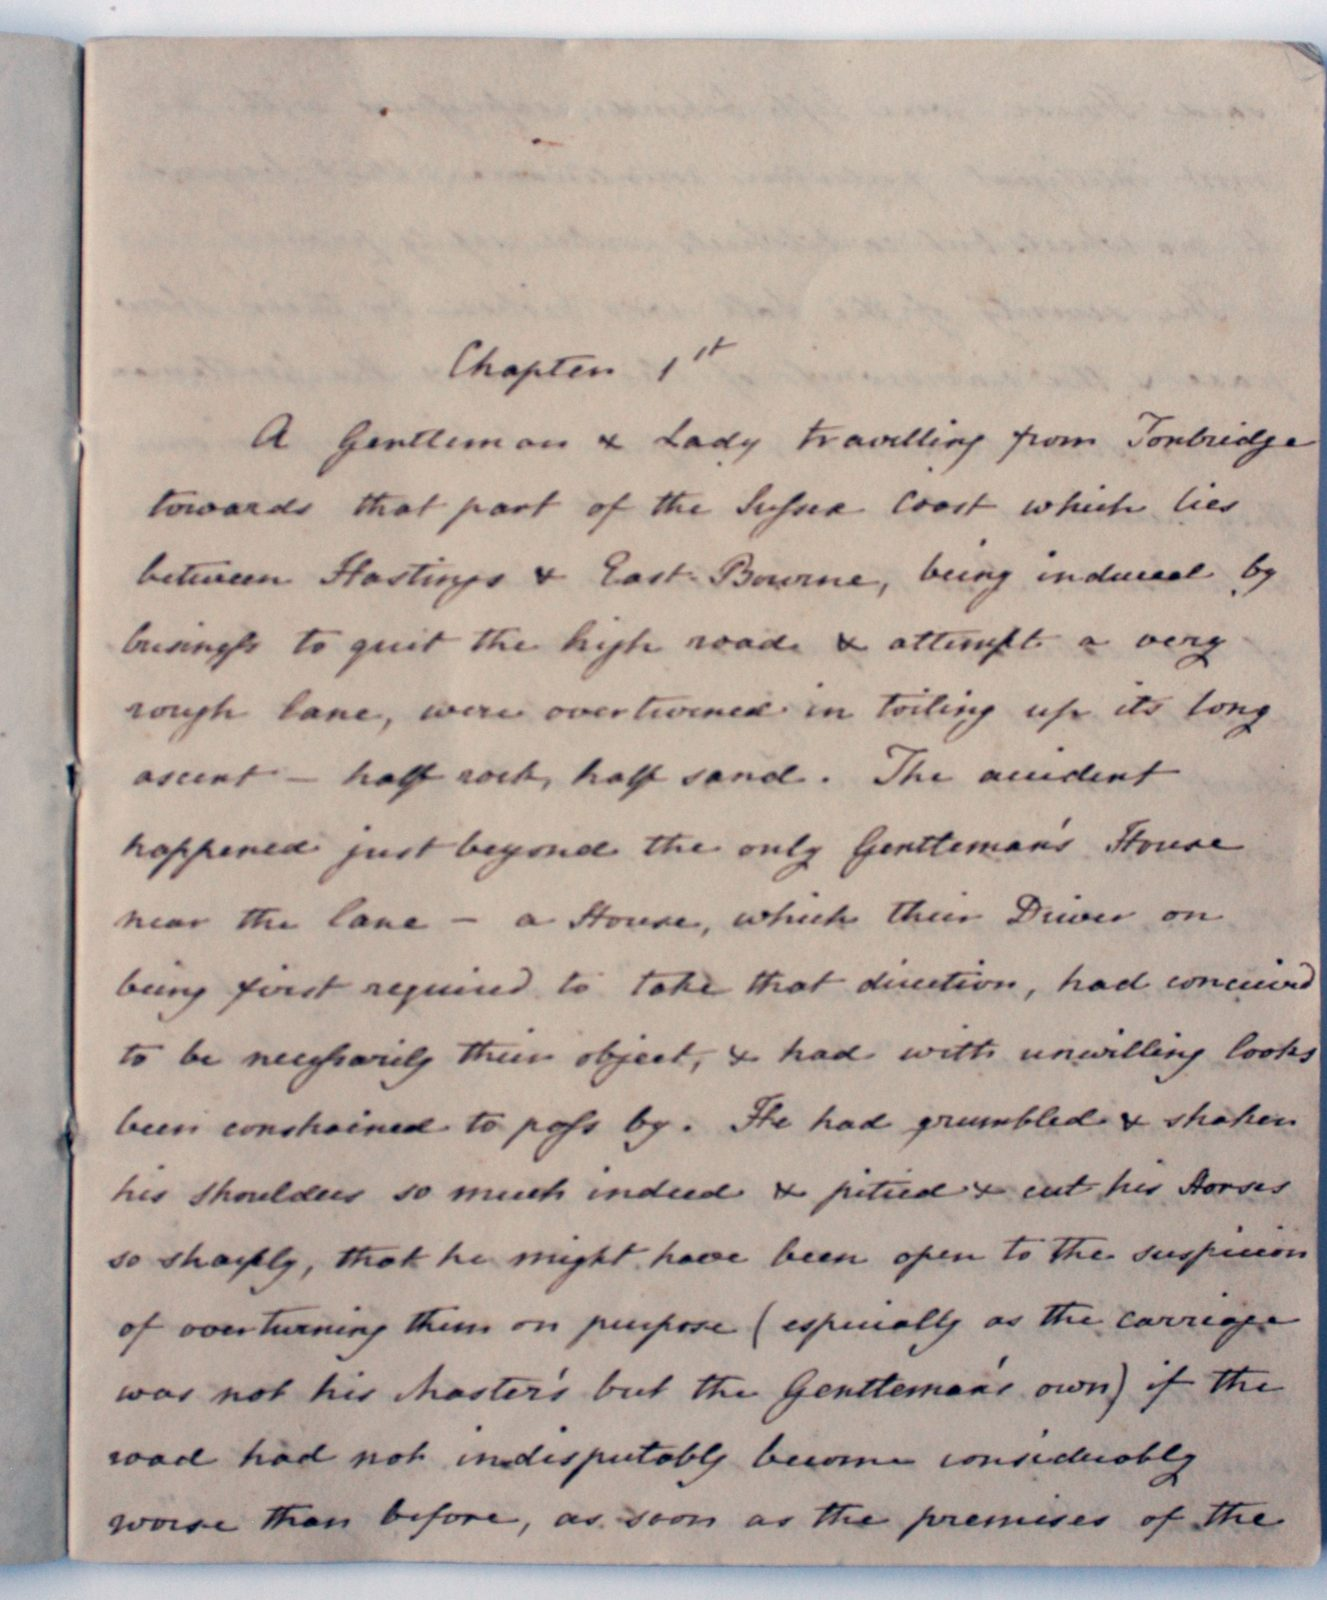 First page of Cassandra's handwritten copy of Sanditon